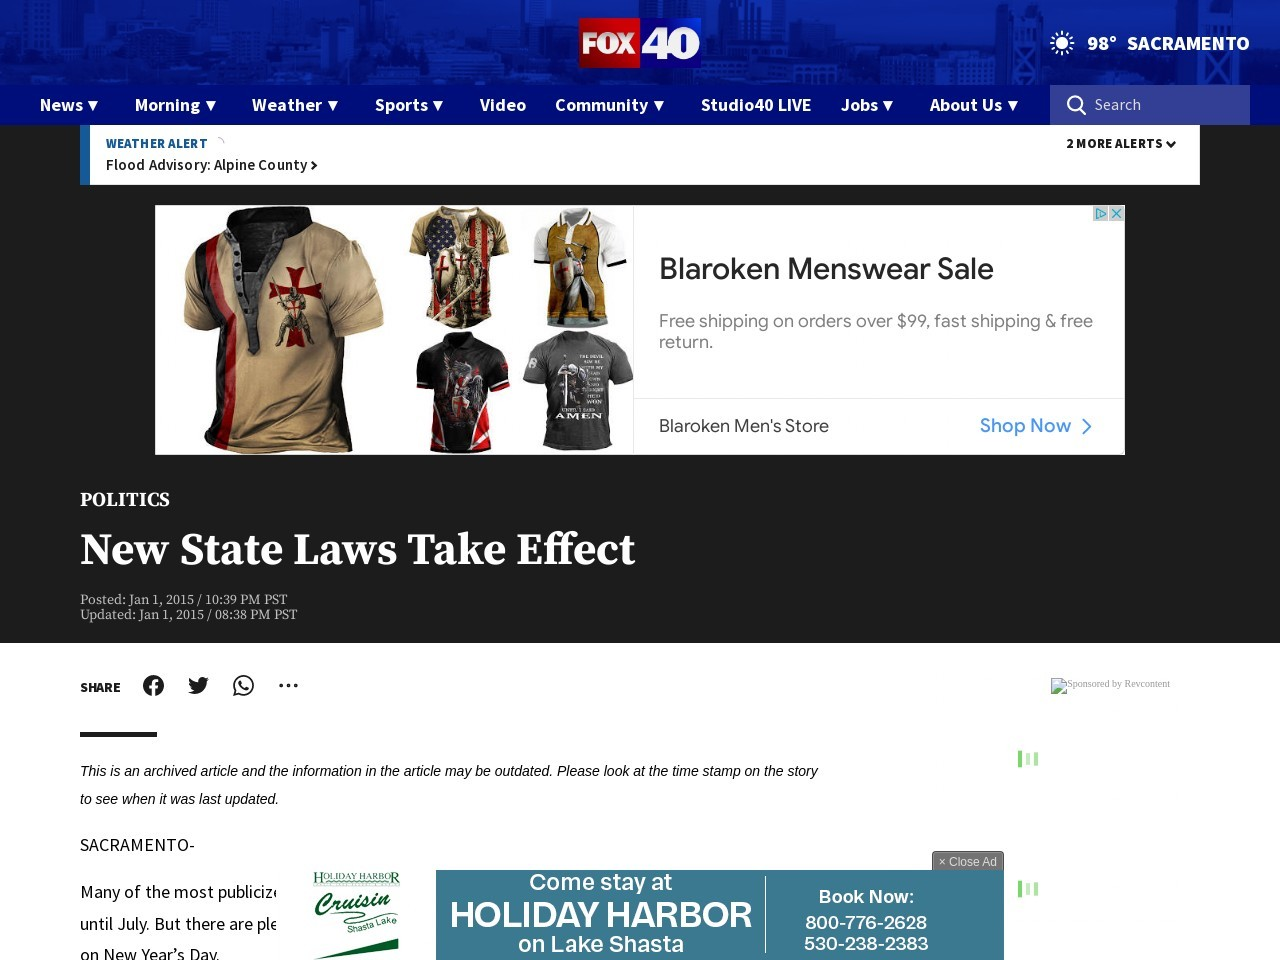 New State Laws Take Effect